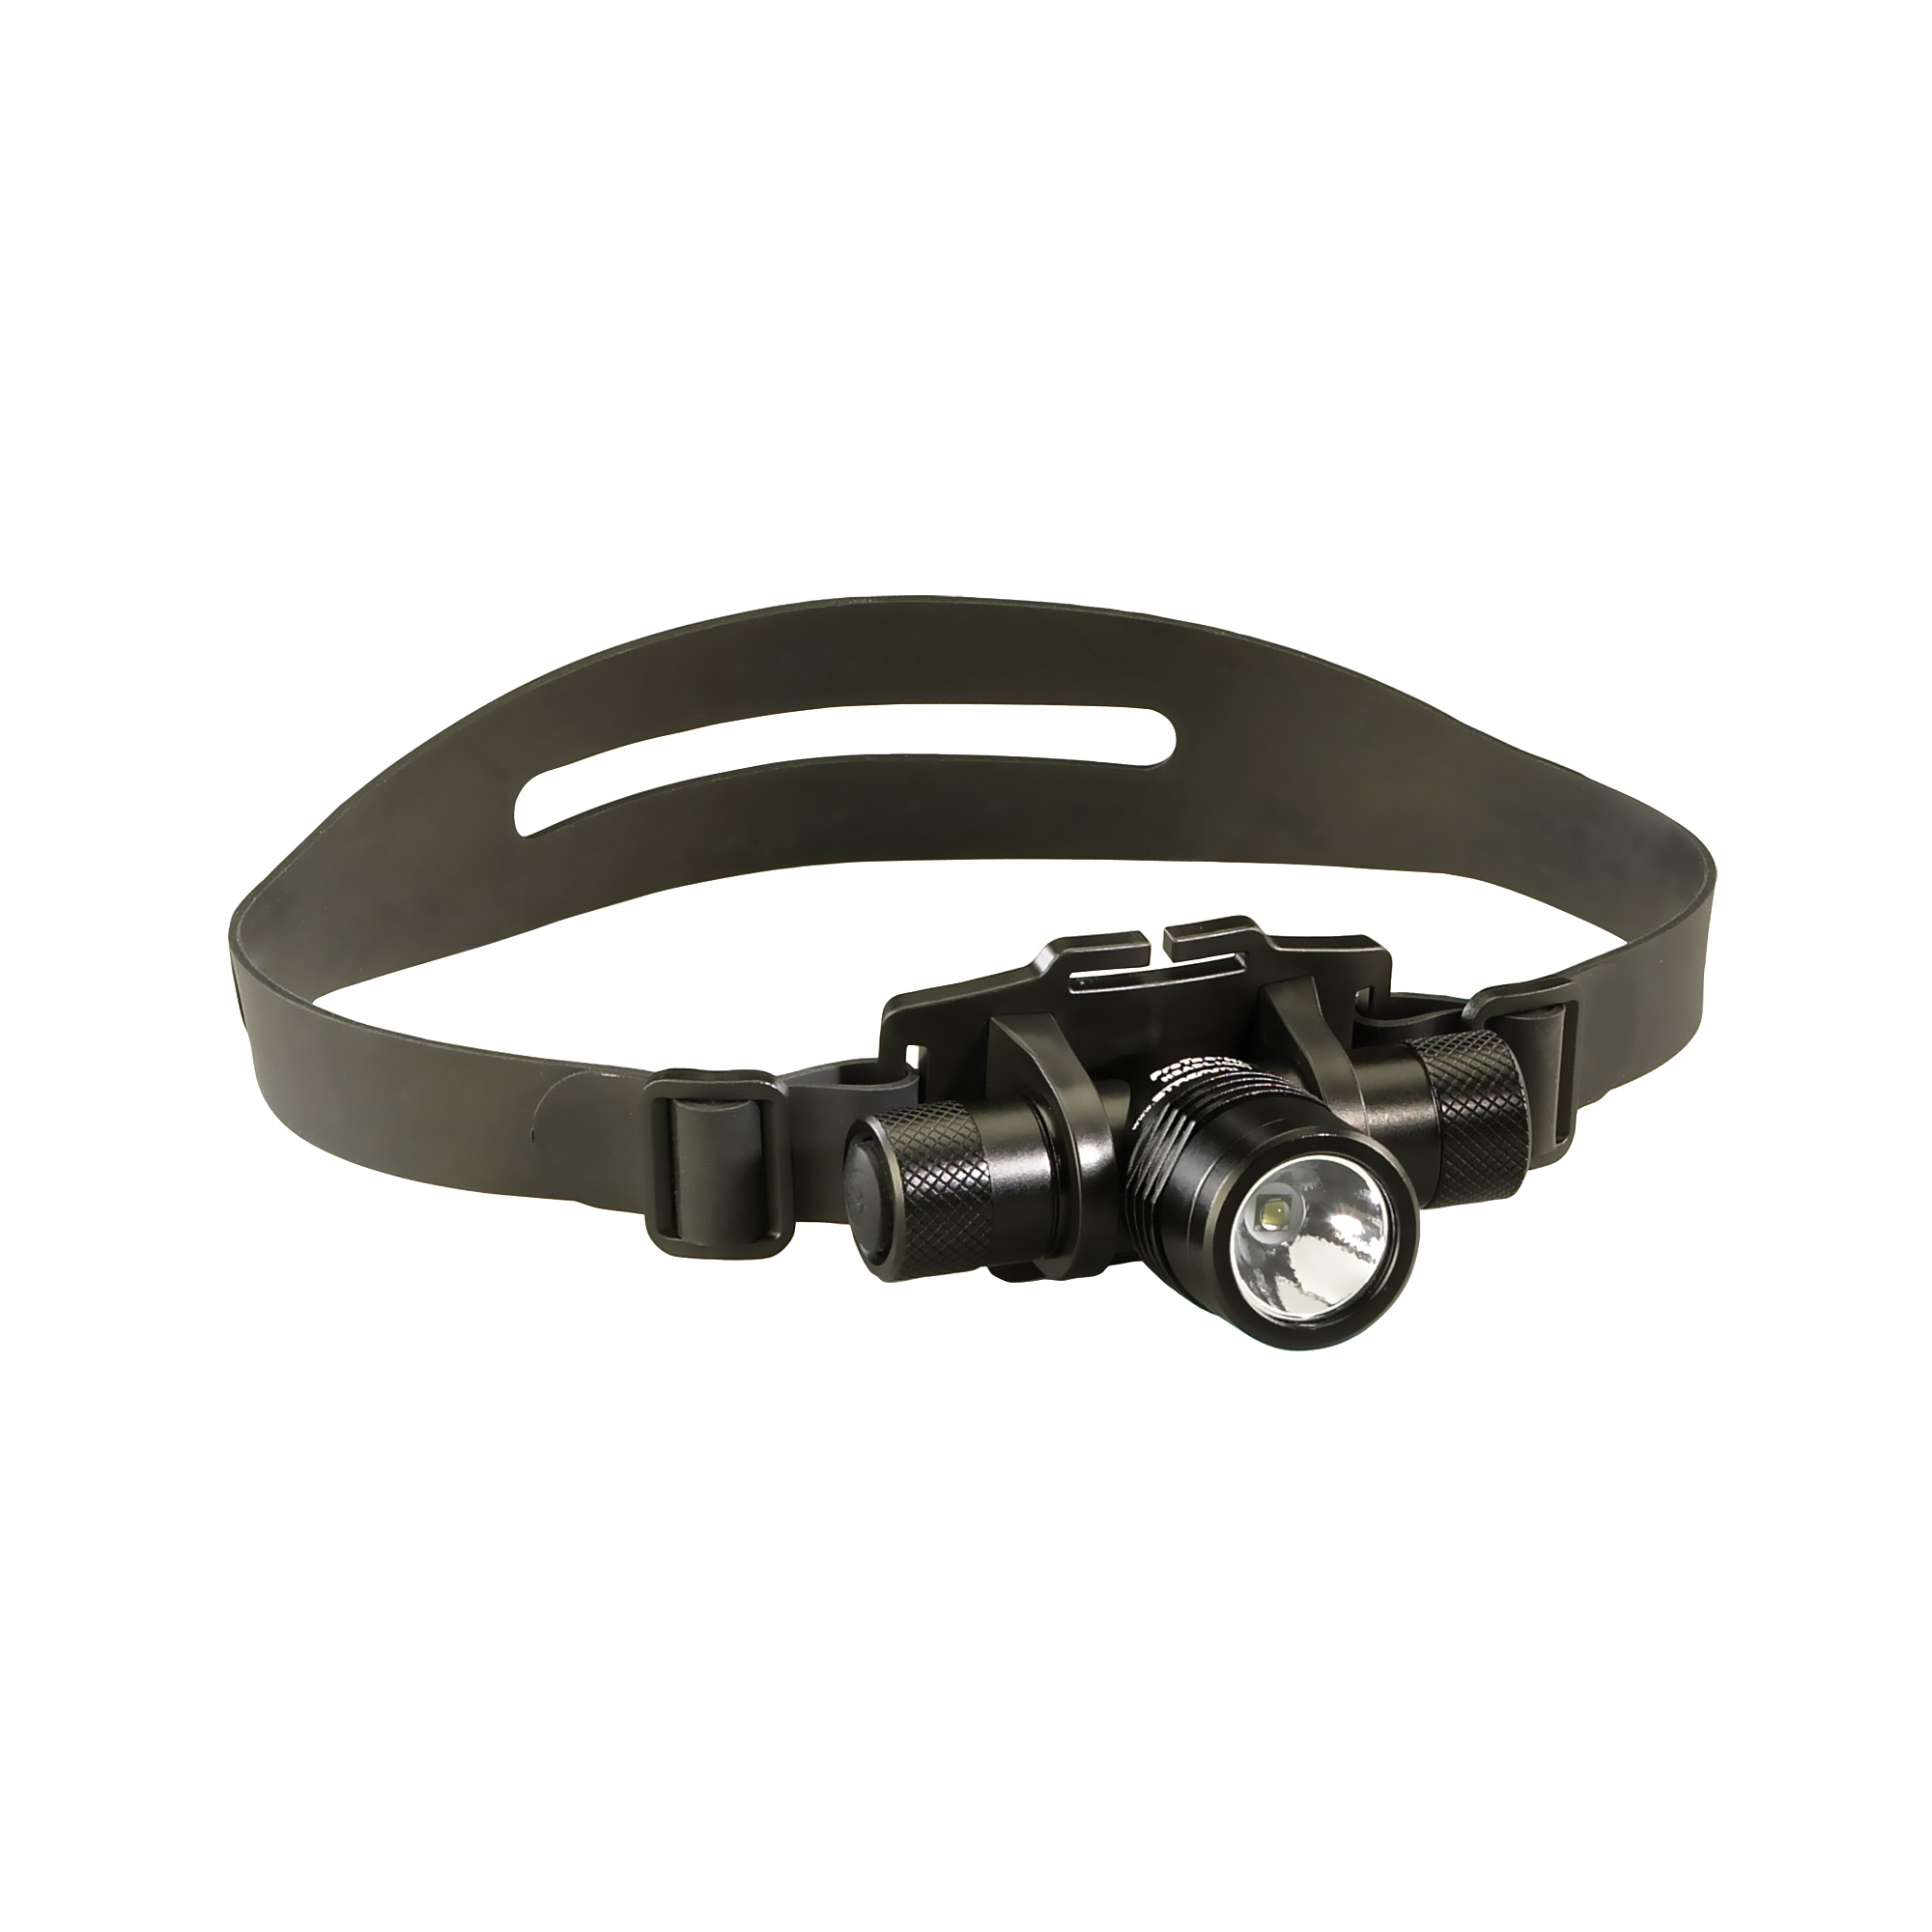 "The HL(R) Series has gone hands free! When your task requires both hands and a bright light with a wide"" flood beam"" reach for the ProTac HL Headlamp. It produces 635 lumens of light that reaches 184 meters"